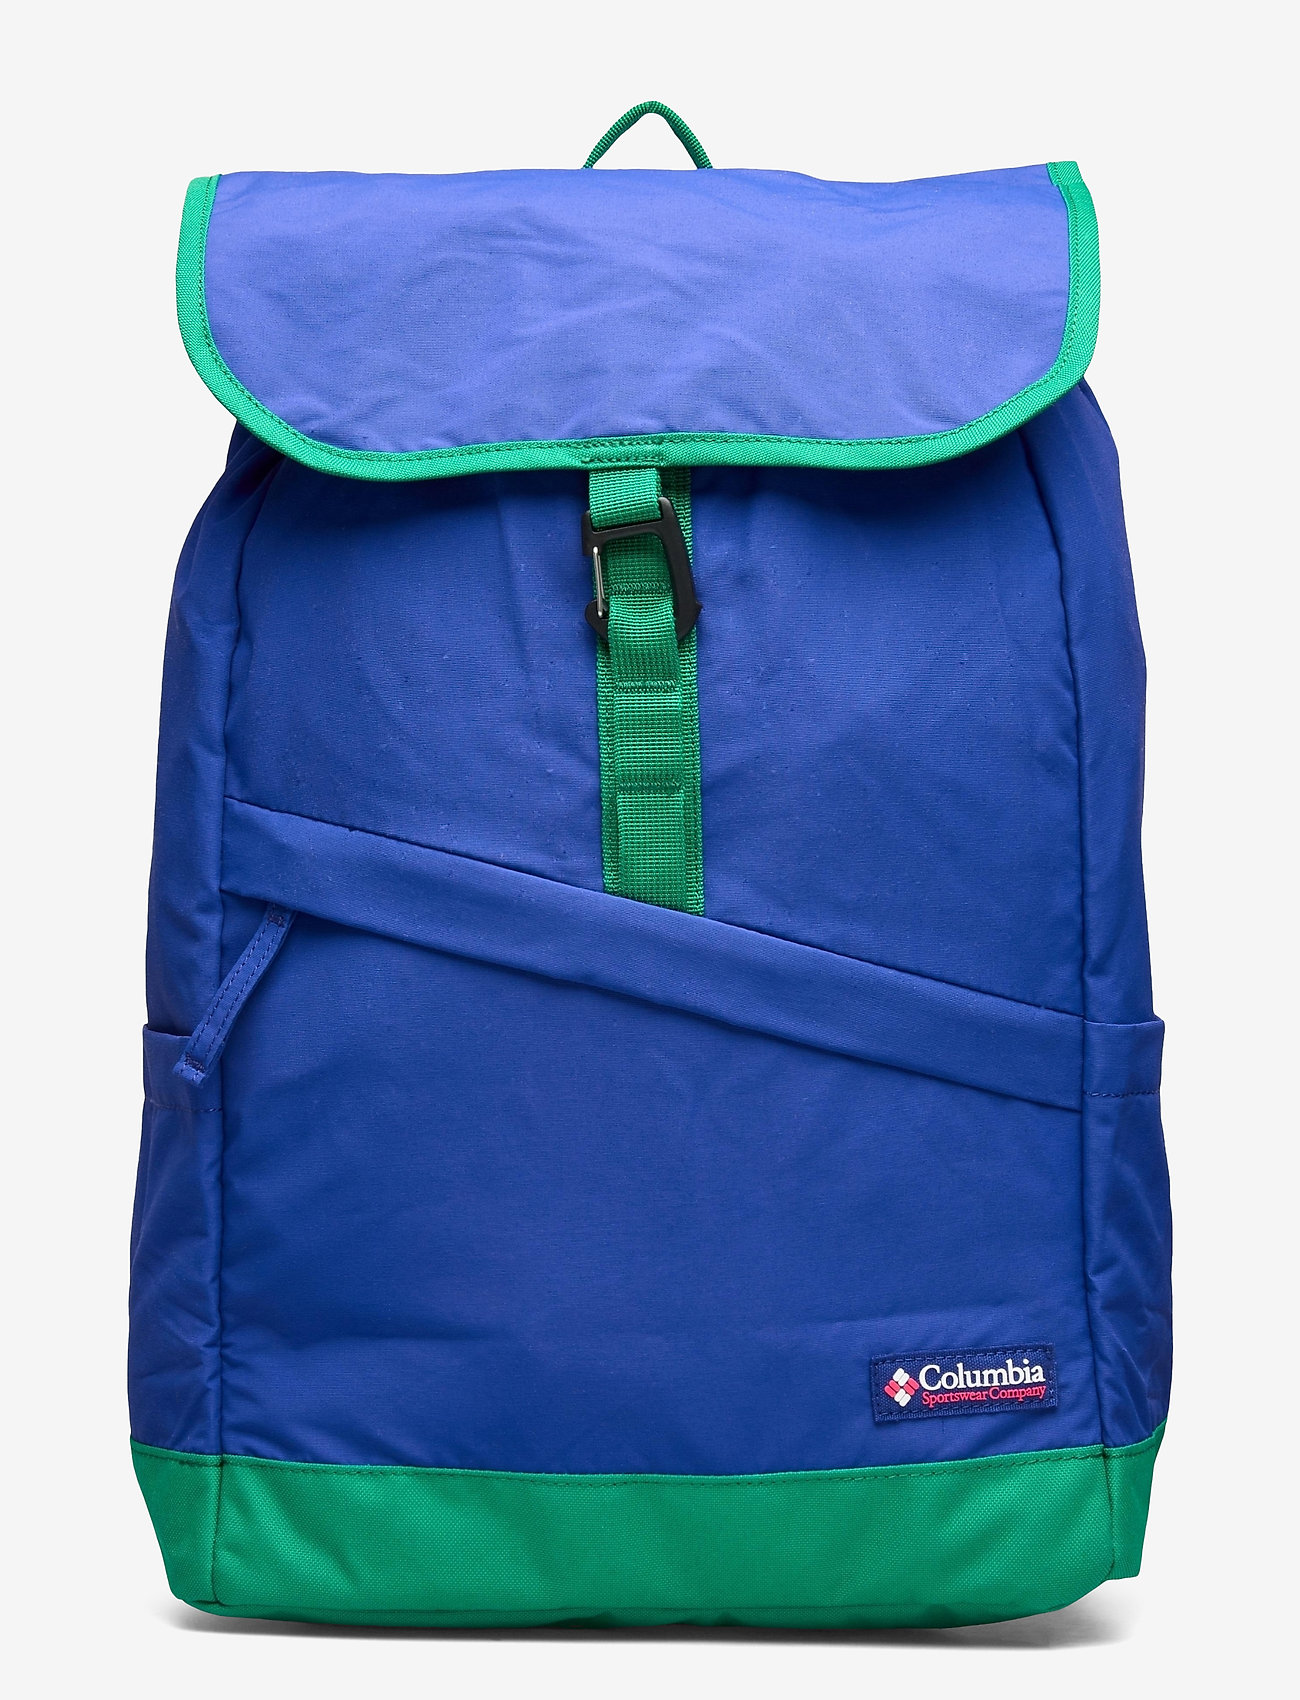 Columbia - Falmouth™ 21L Backpack - torby treningowe - lapis blue, eme - 0